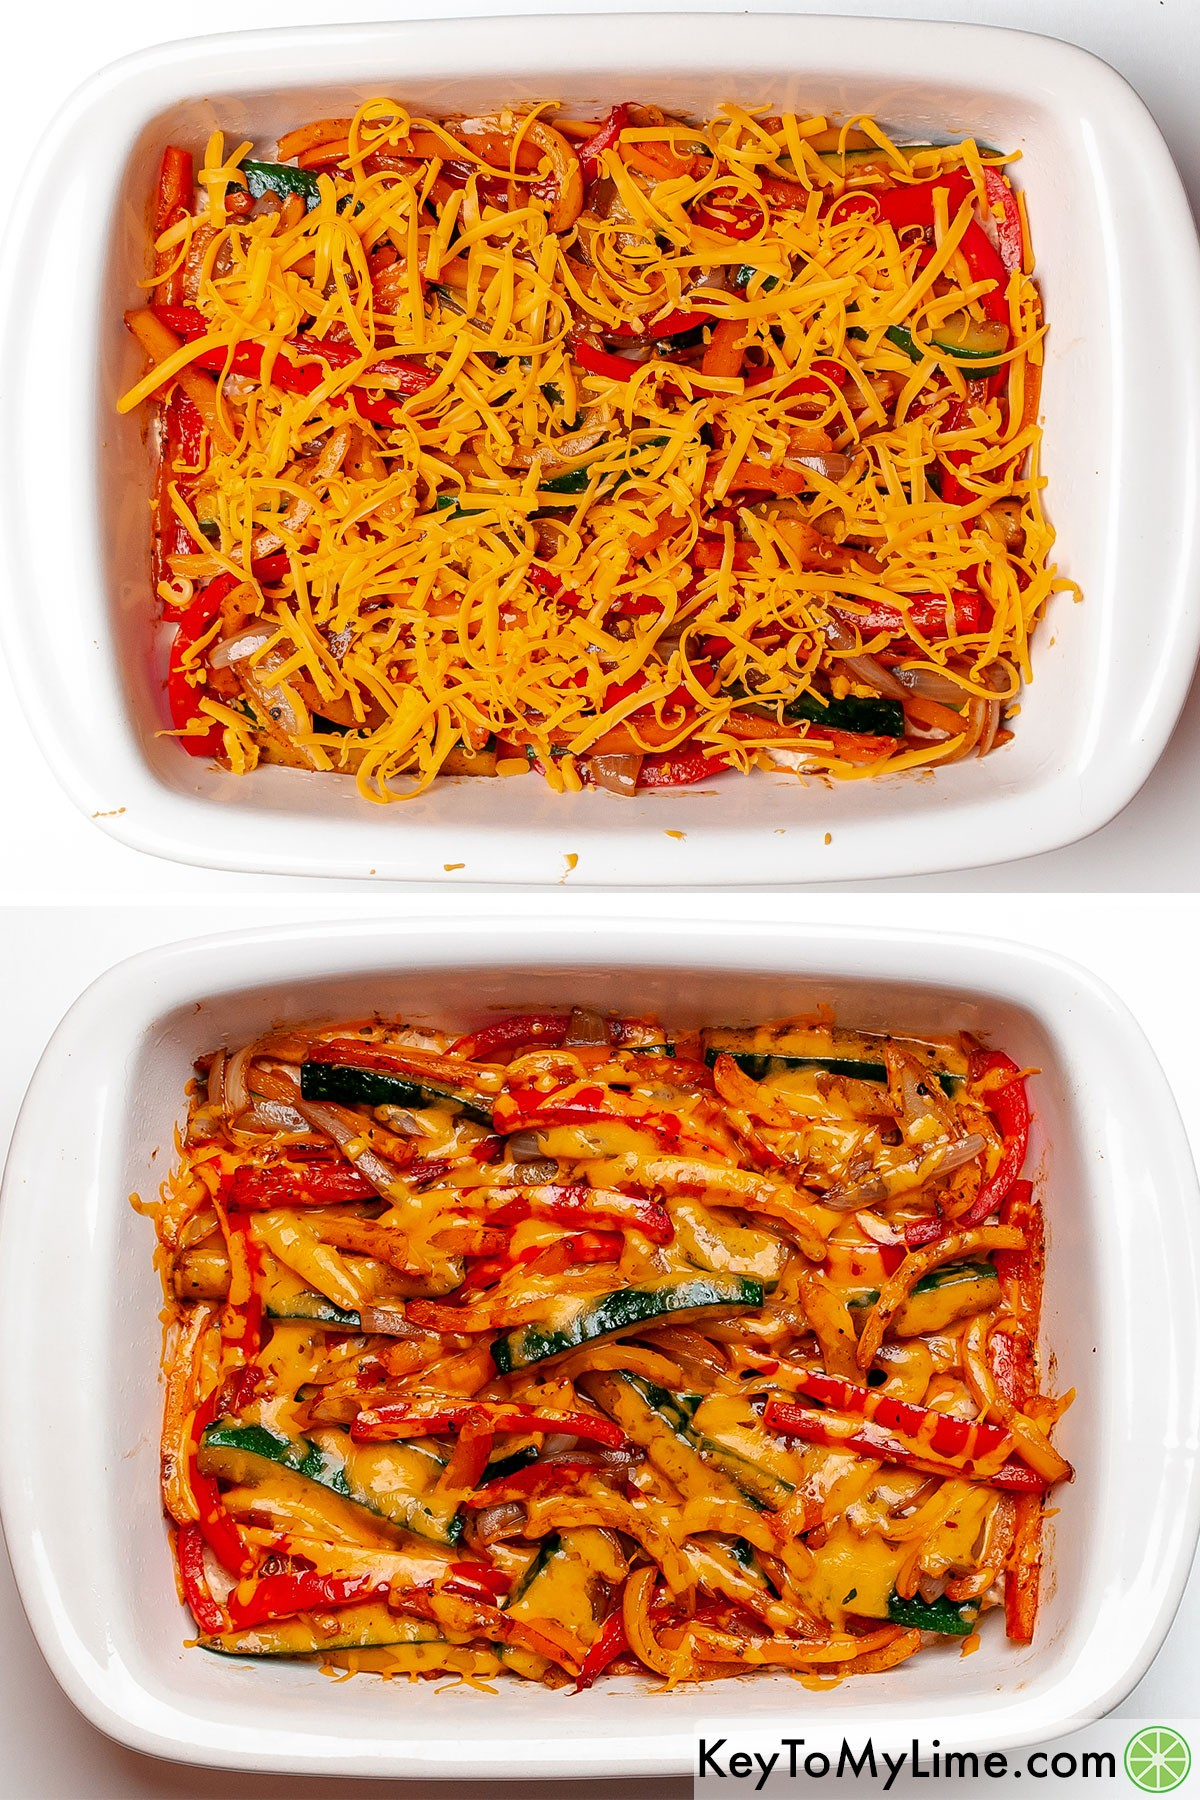 Chicken fajita casserole before and after baking it and melting the cheese on top.